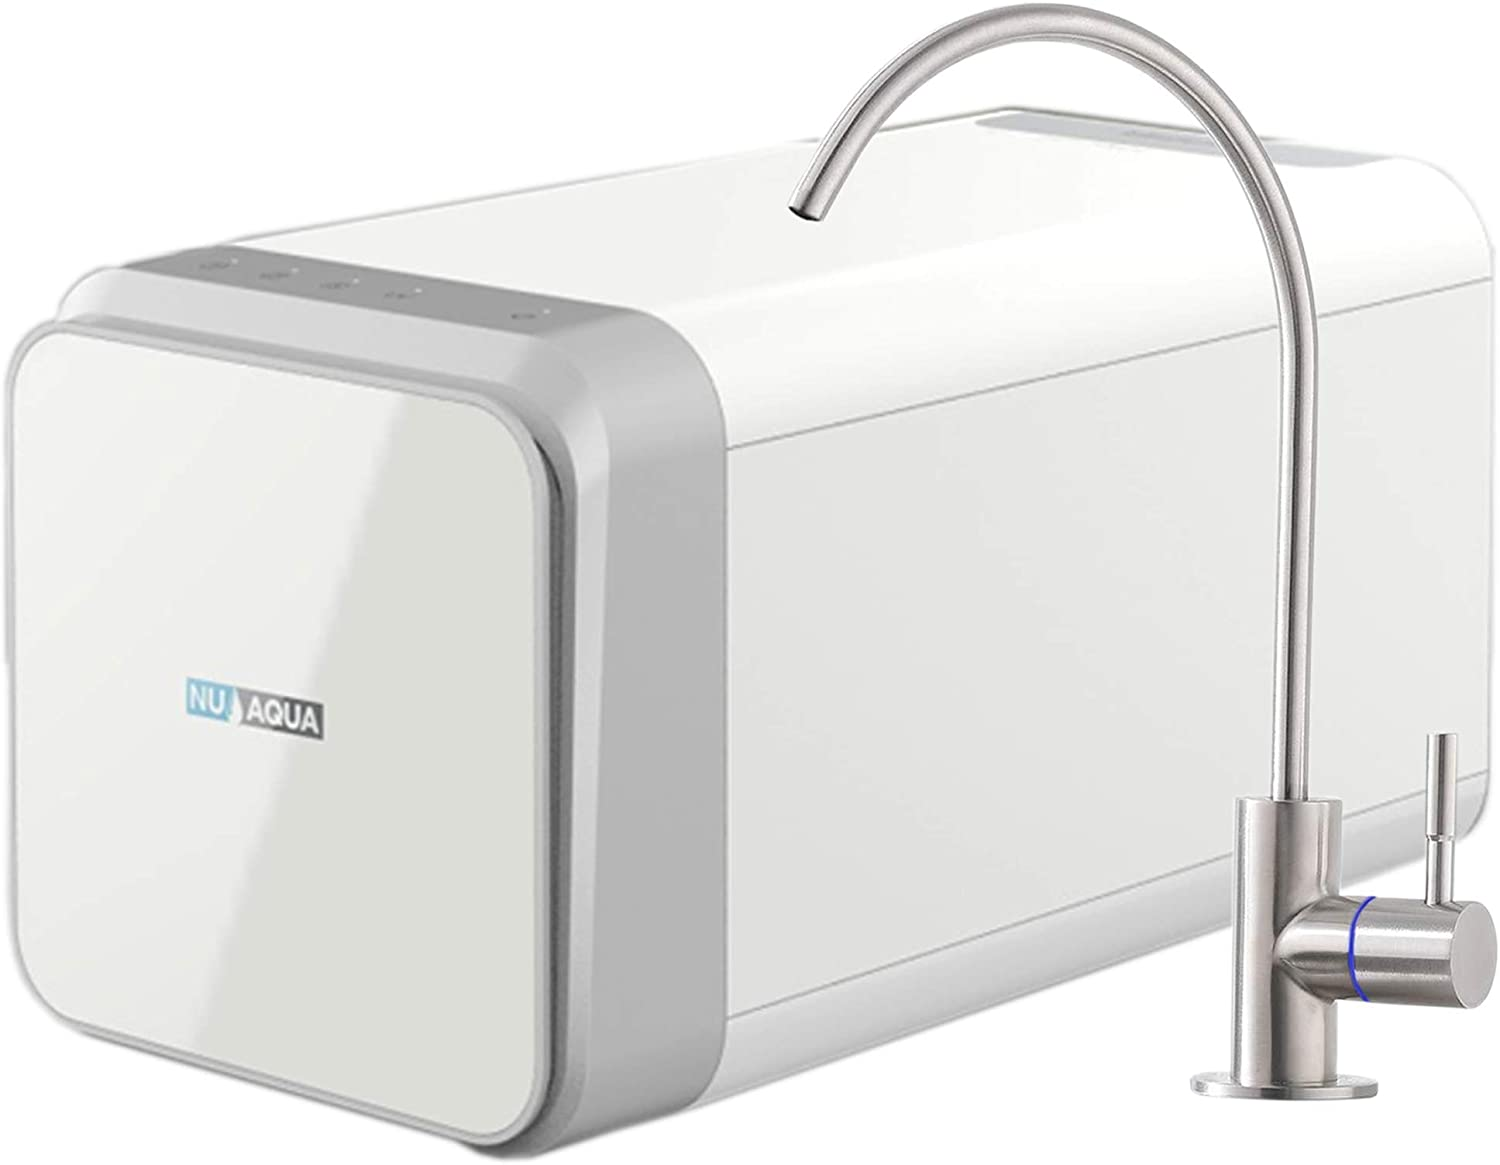 NU Aqua Efficiency Series 600 2021 Columbus Mall spring and summer new GPD Revers RO Direct Flow Tankless